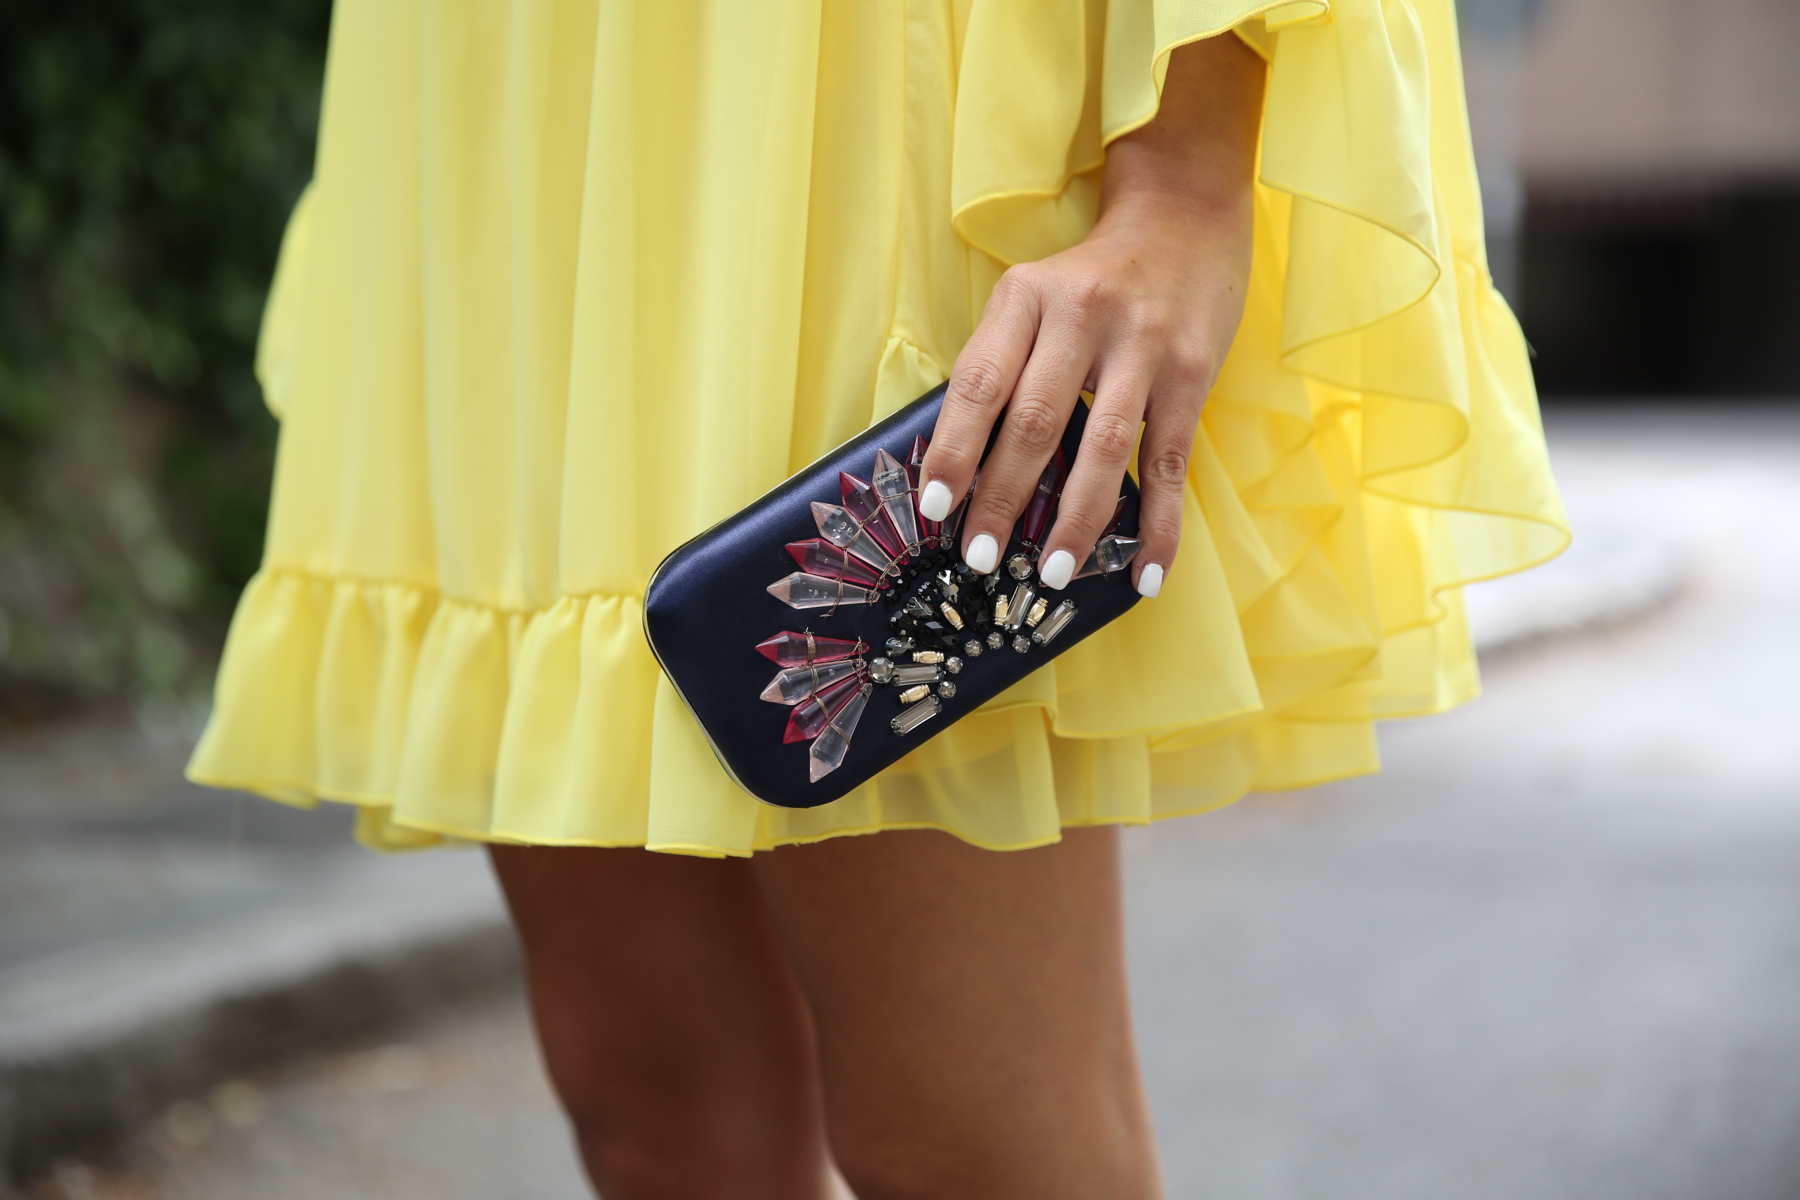 trendy_taste-look-outfit-street_style-ootd-blogger-blog-fashion_spain-moda_españa-yellow_dress-vestido_amarillo-boda-wedding-evento-clutch_pedreria-mas34-sandalias_azules-blue_sandals-4